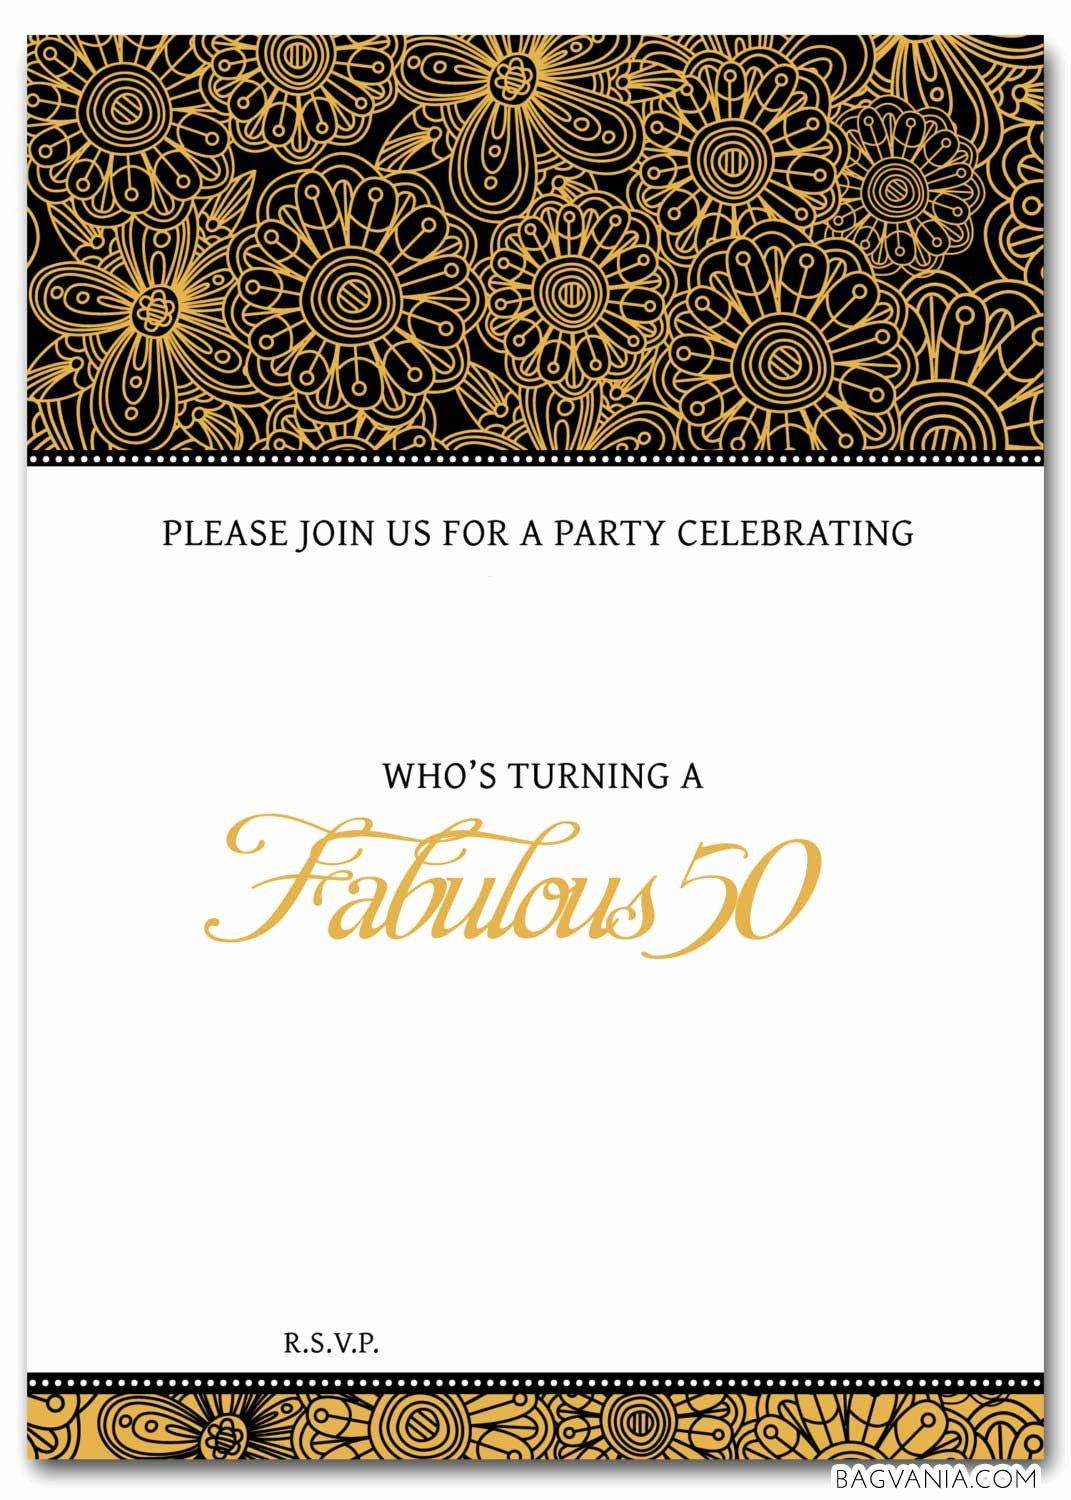 Free Printable Anniversary Invitations Lovely Free 50th Birthday Party Invitations Wording – Free Printable Birthday Invitation Templates